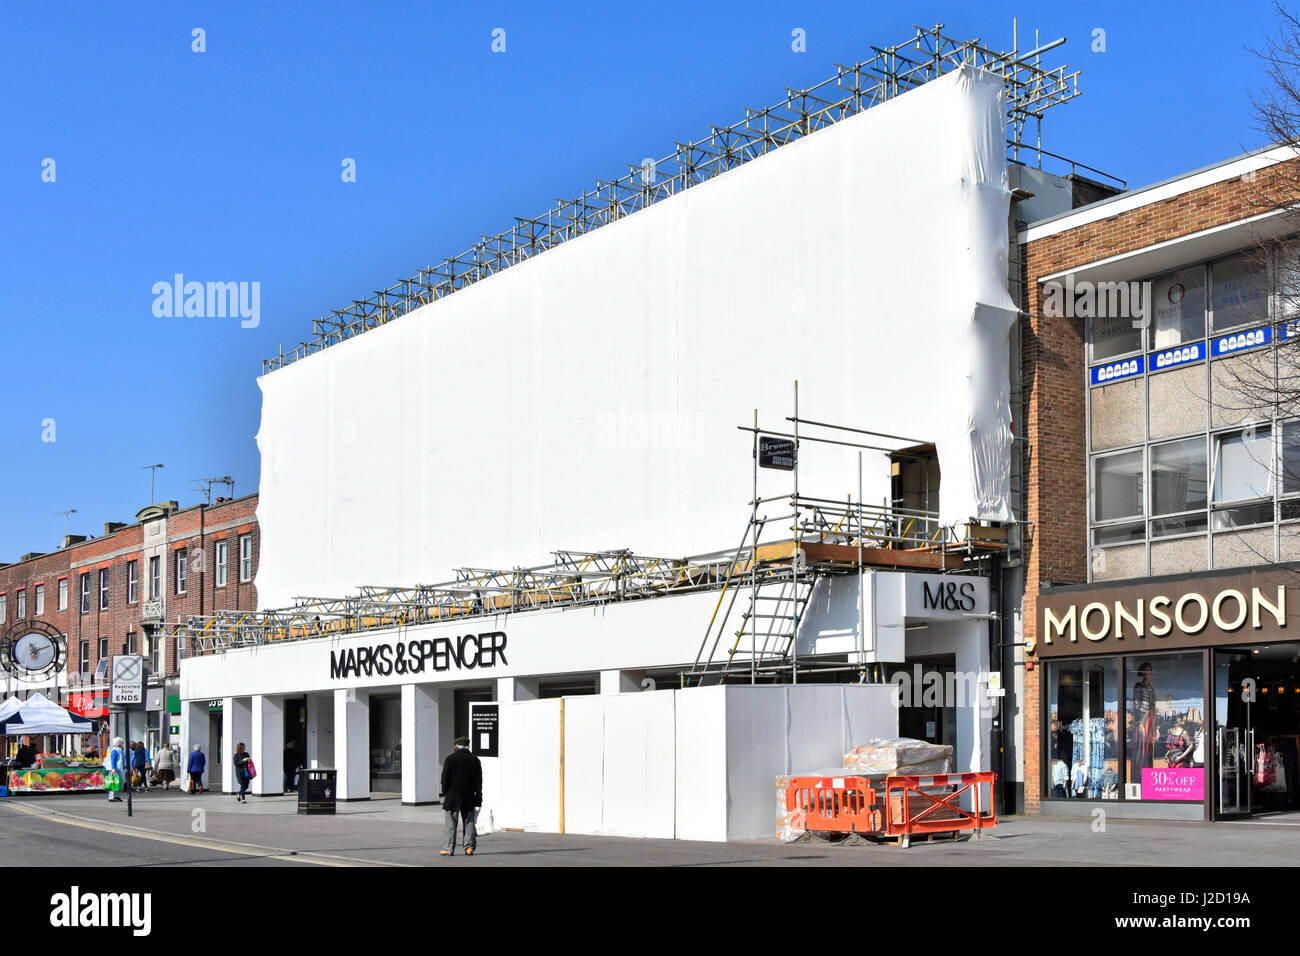 Scaffolding & plastic sheeting around front facade of open UK Marks and Spencer High Street store during building - Stock Image